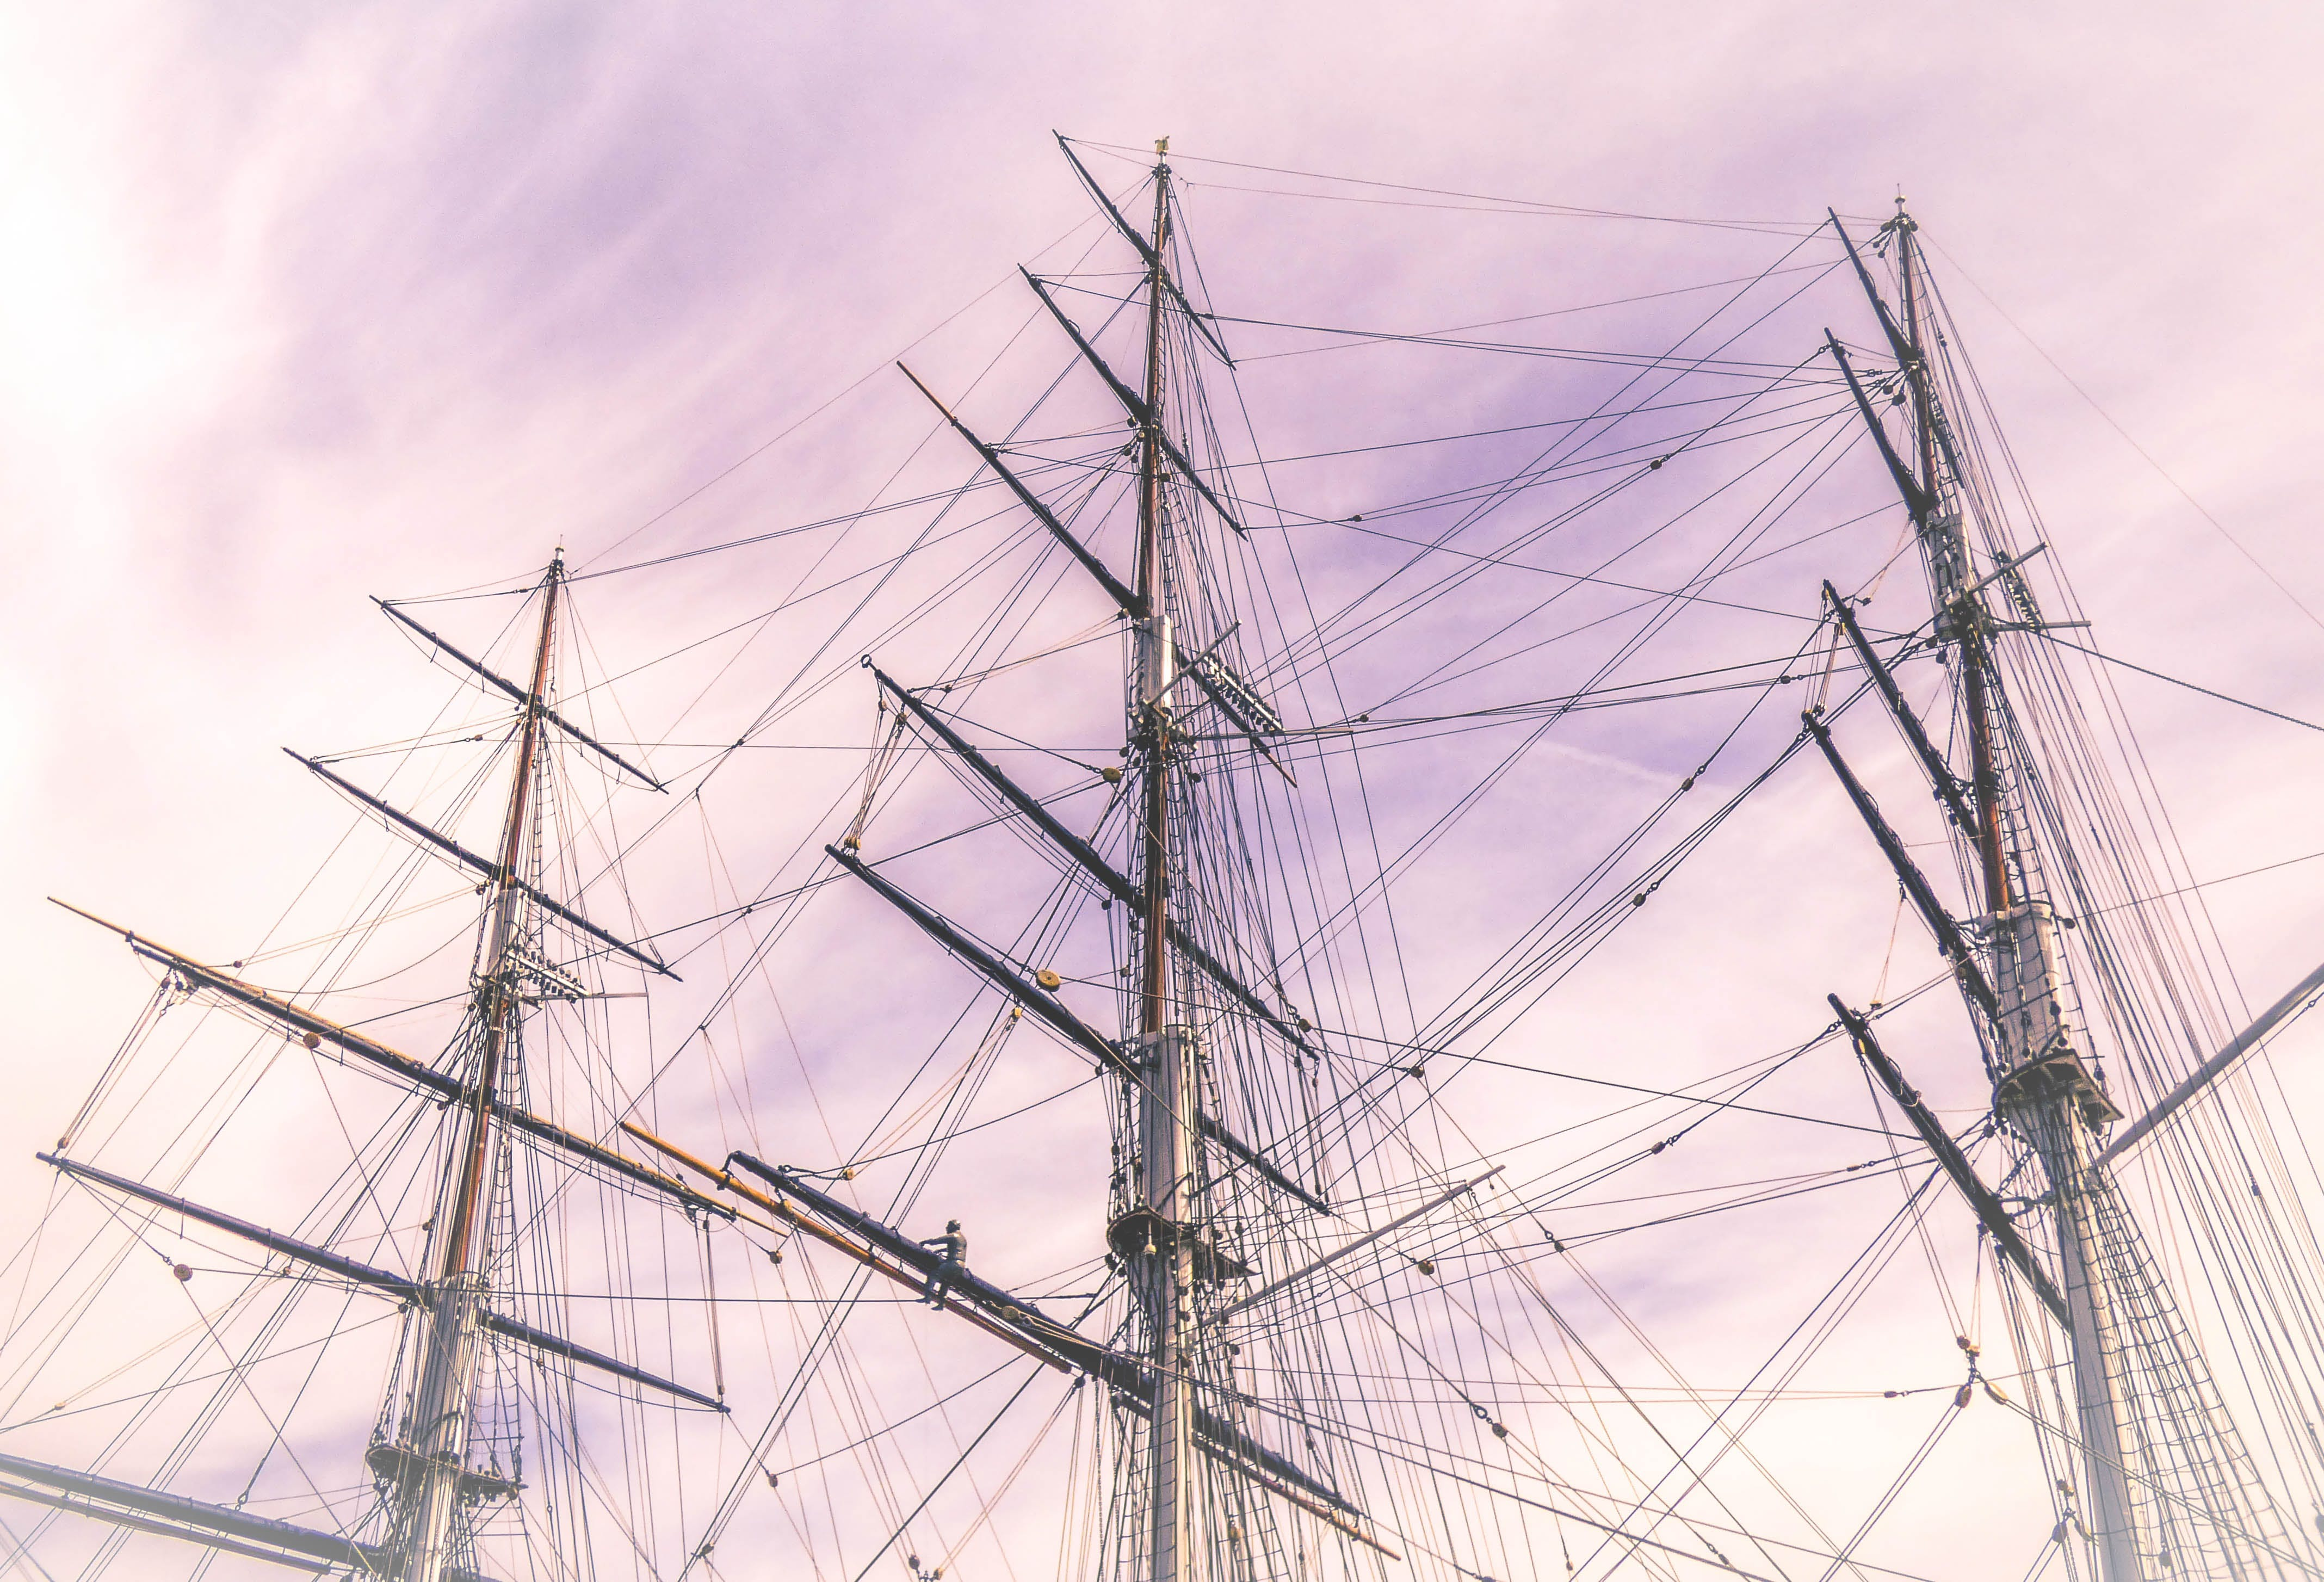 Galleon Ship Photo Under the Cloudy Sky